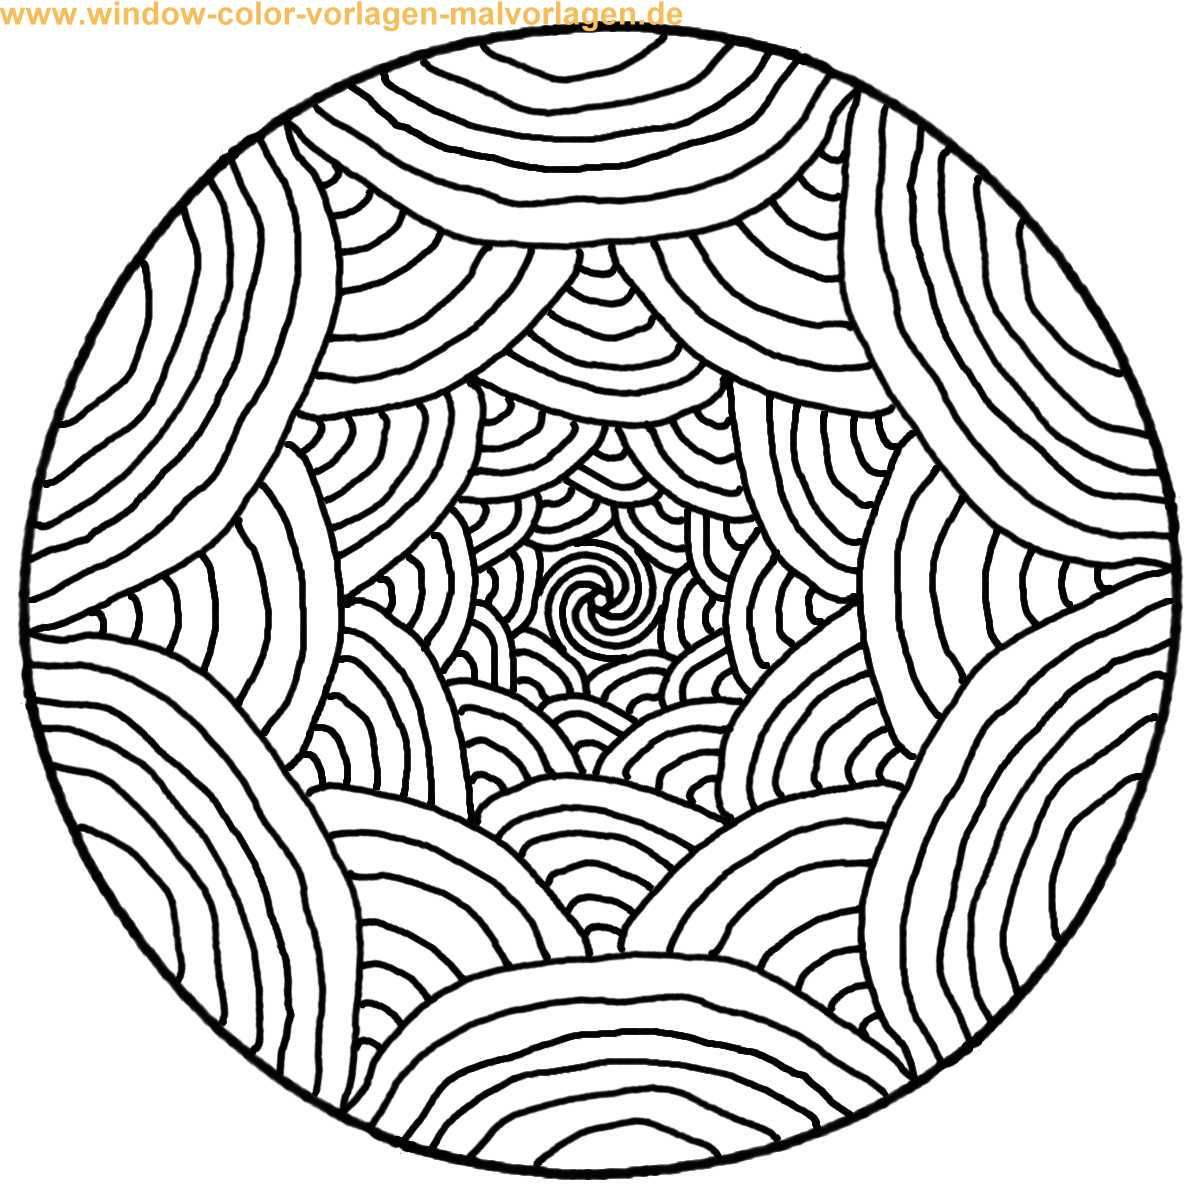 mandalas to print and color | Malvorlage | Ausmalbild | Mandala zum ...